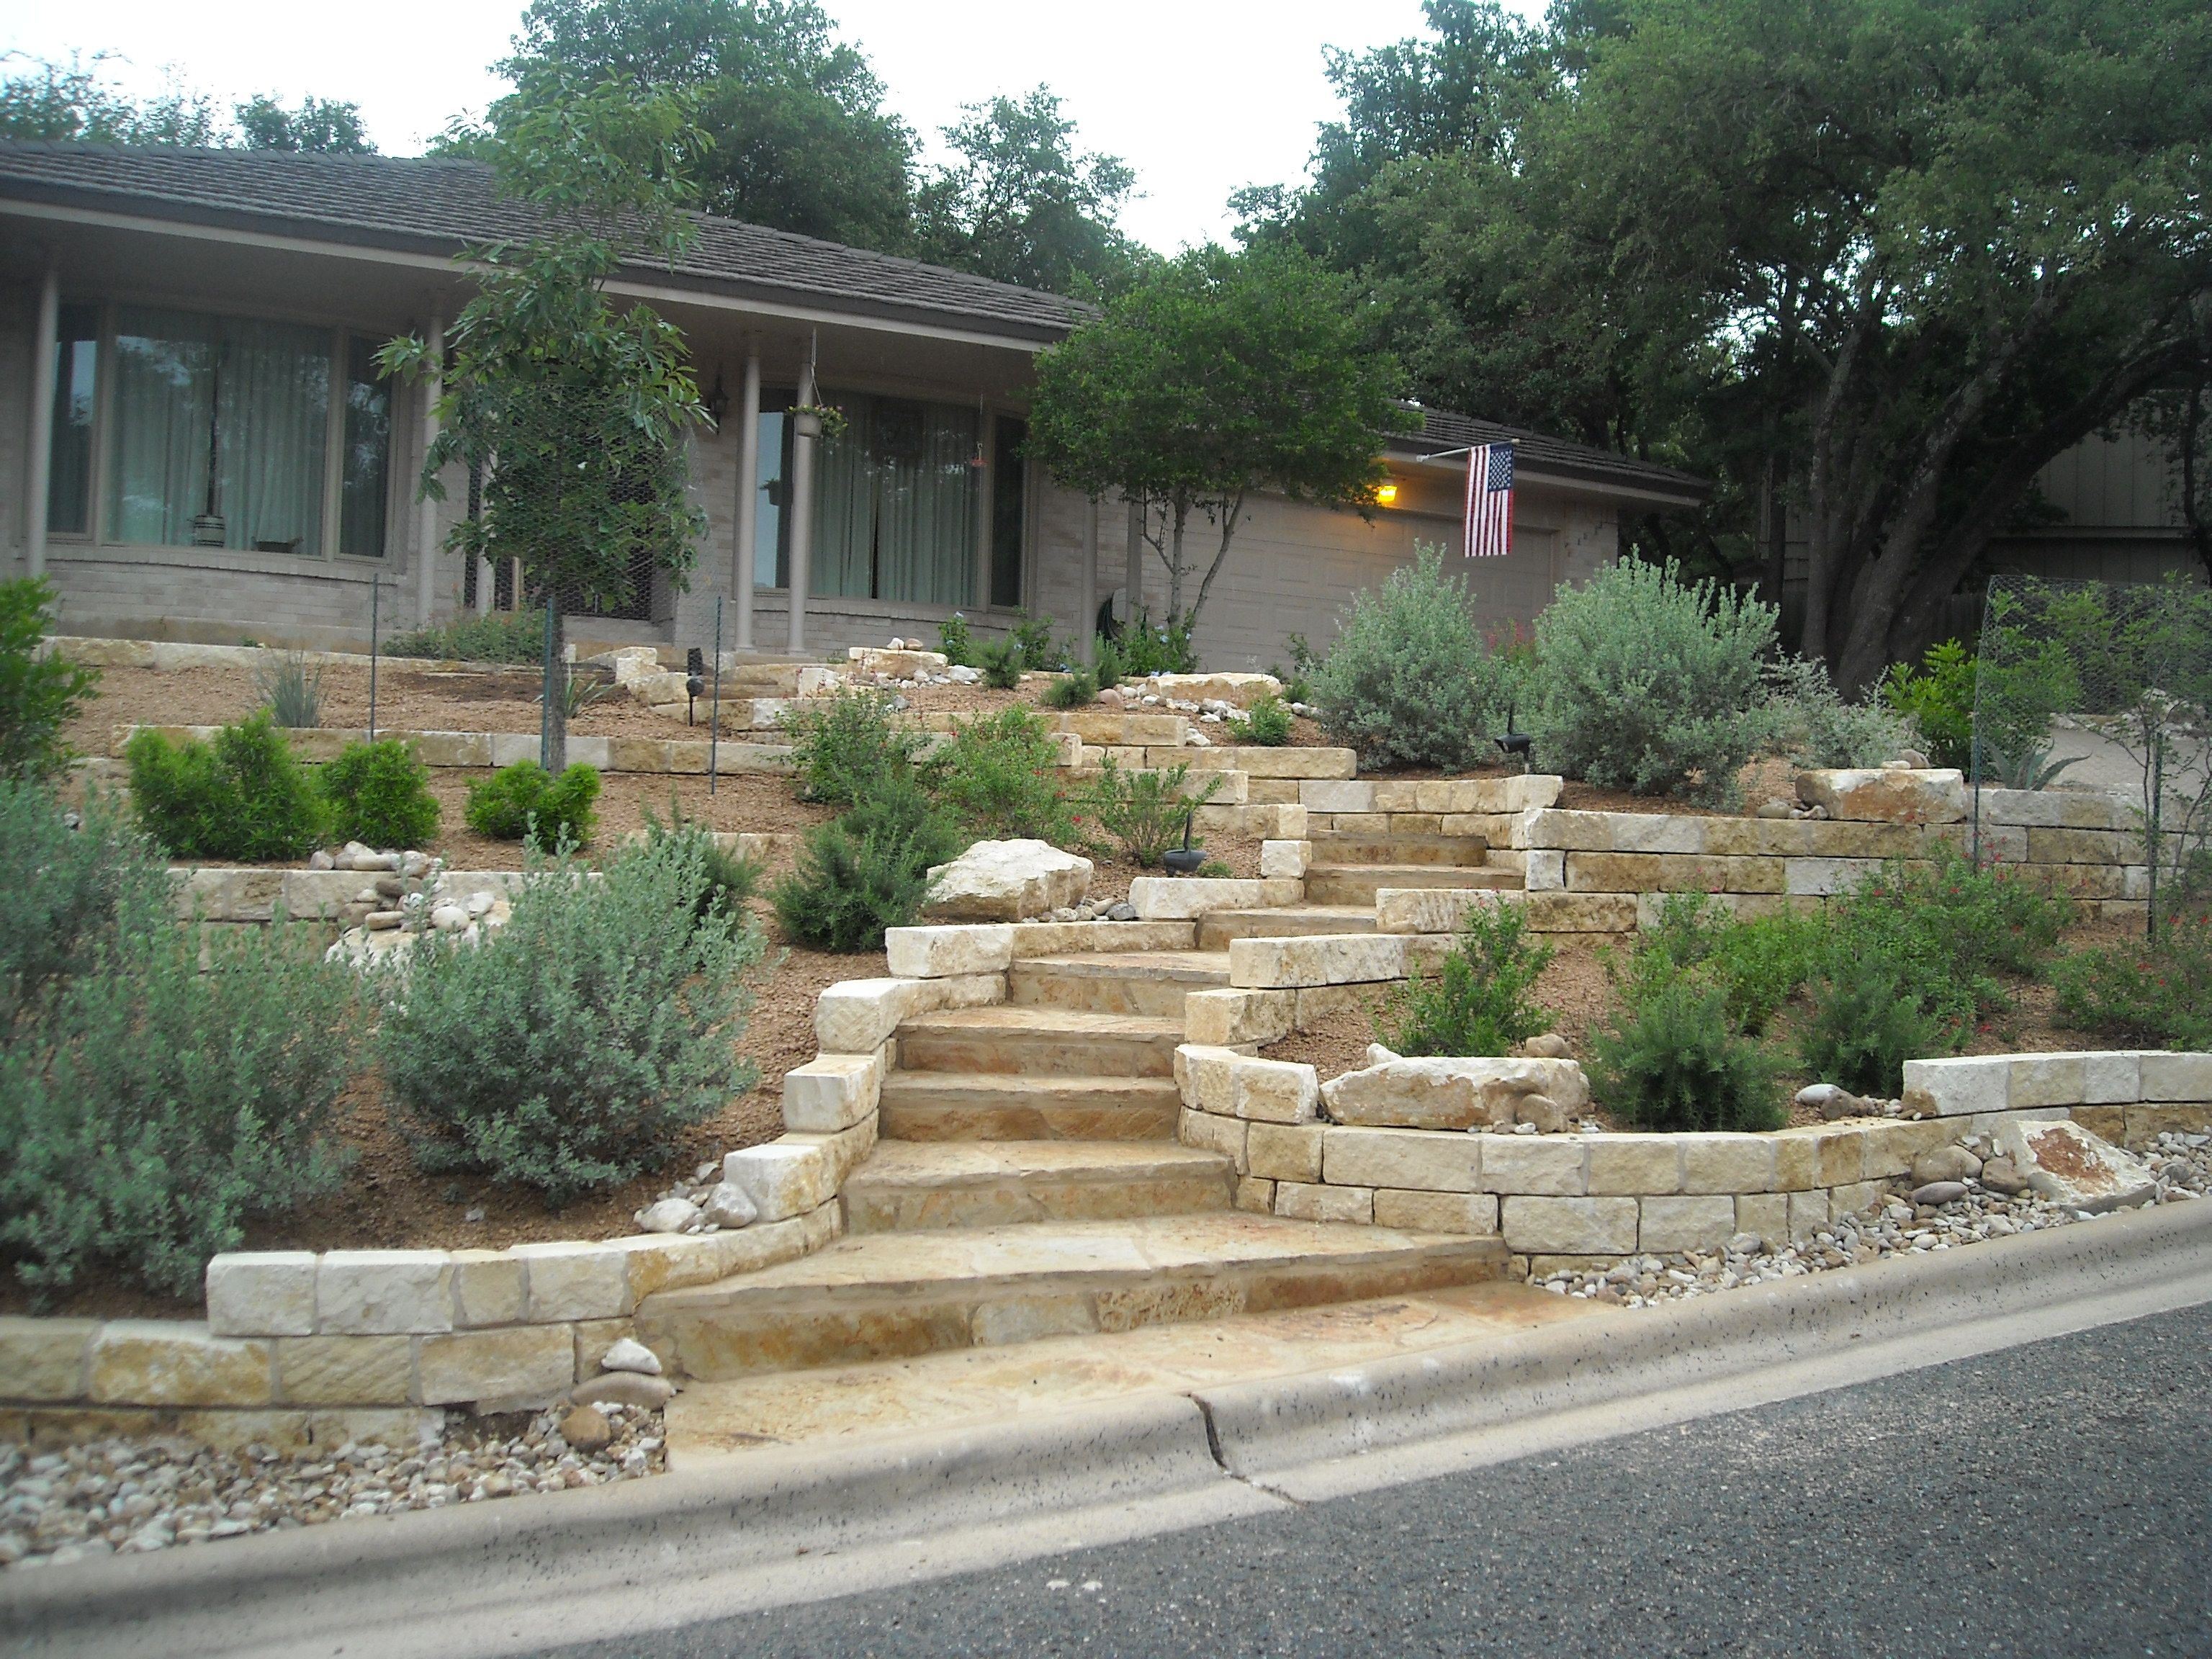 Backyard patio ideas flagstone - Xeriscape Front Yard With Limestone Retaining Walls And A